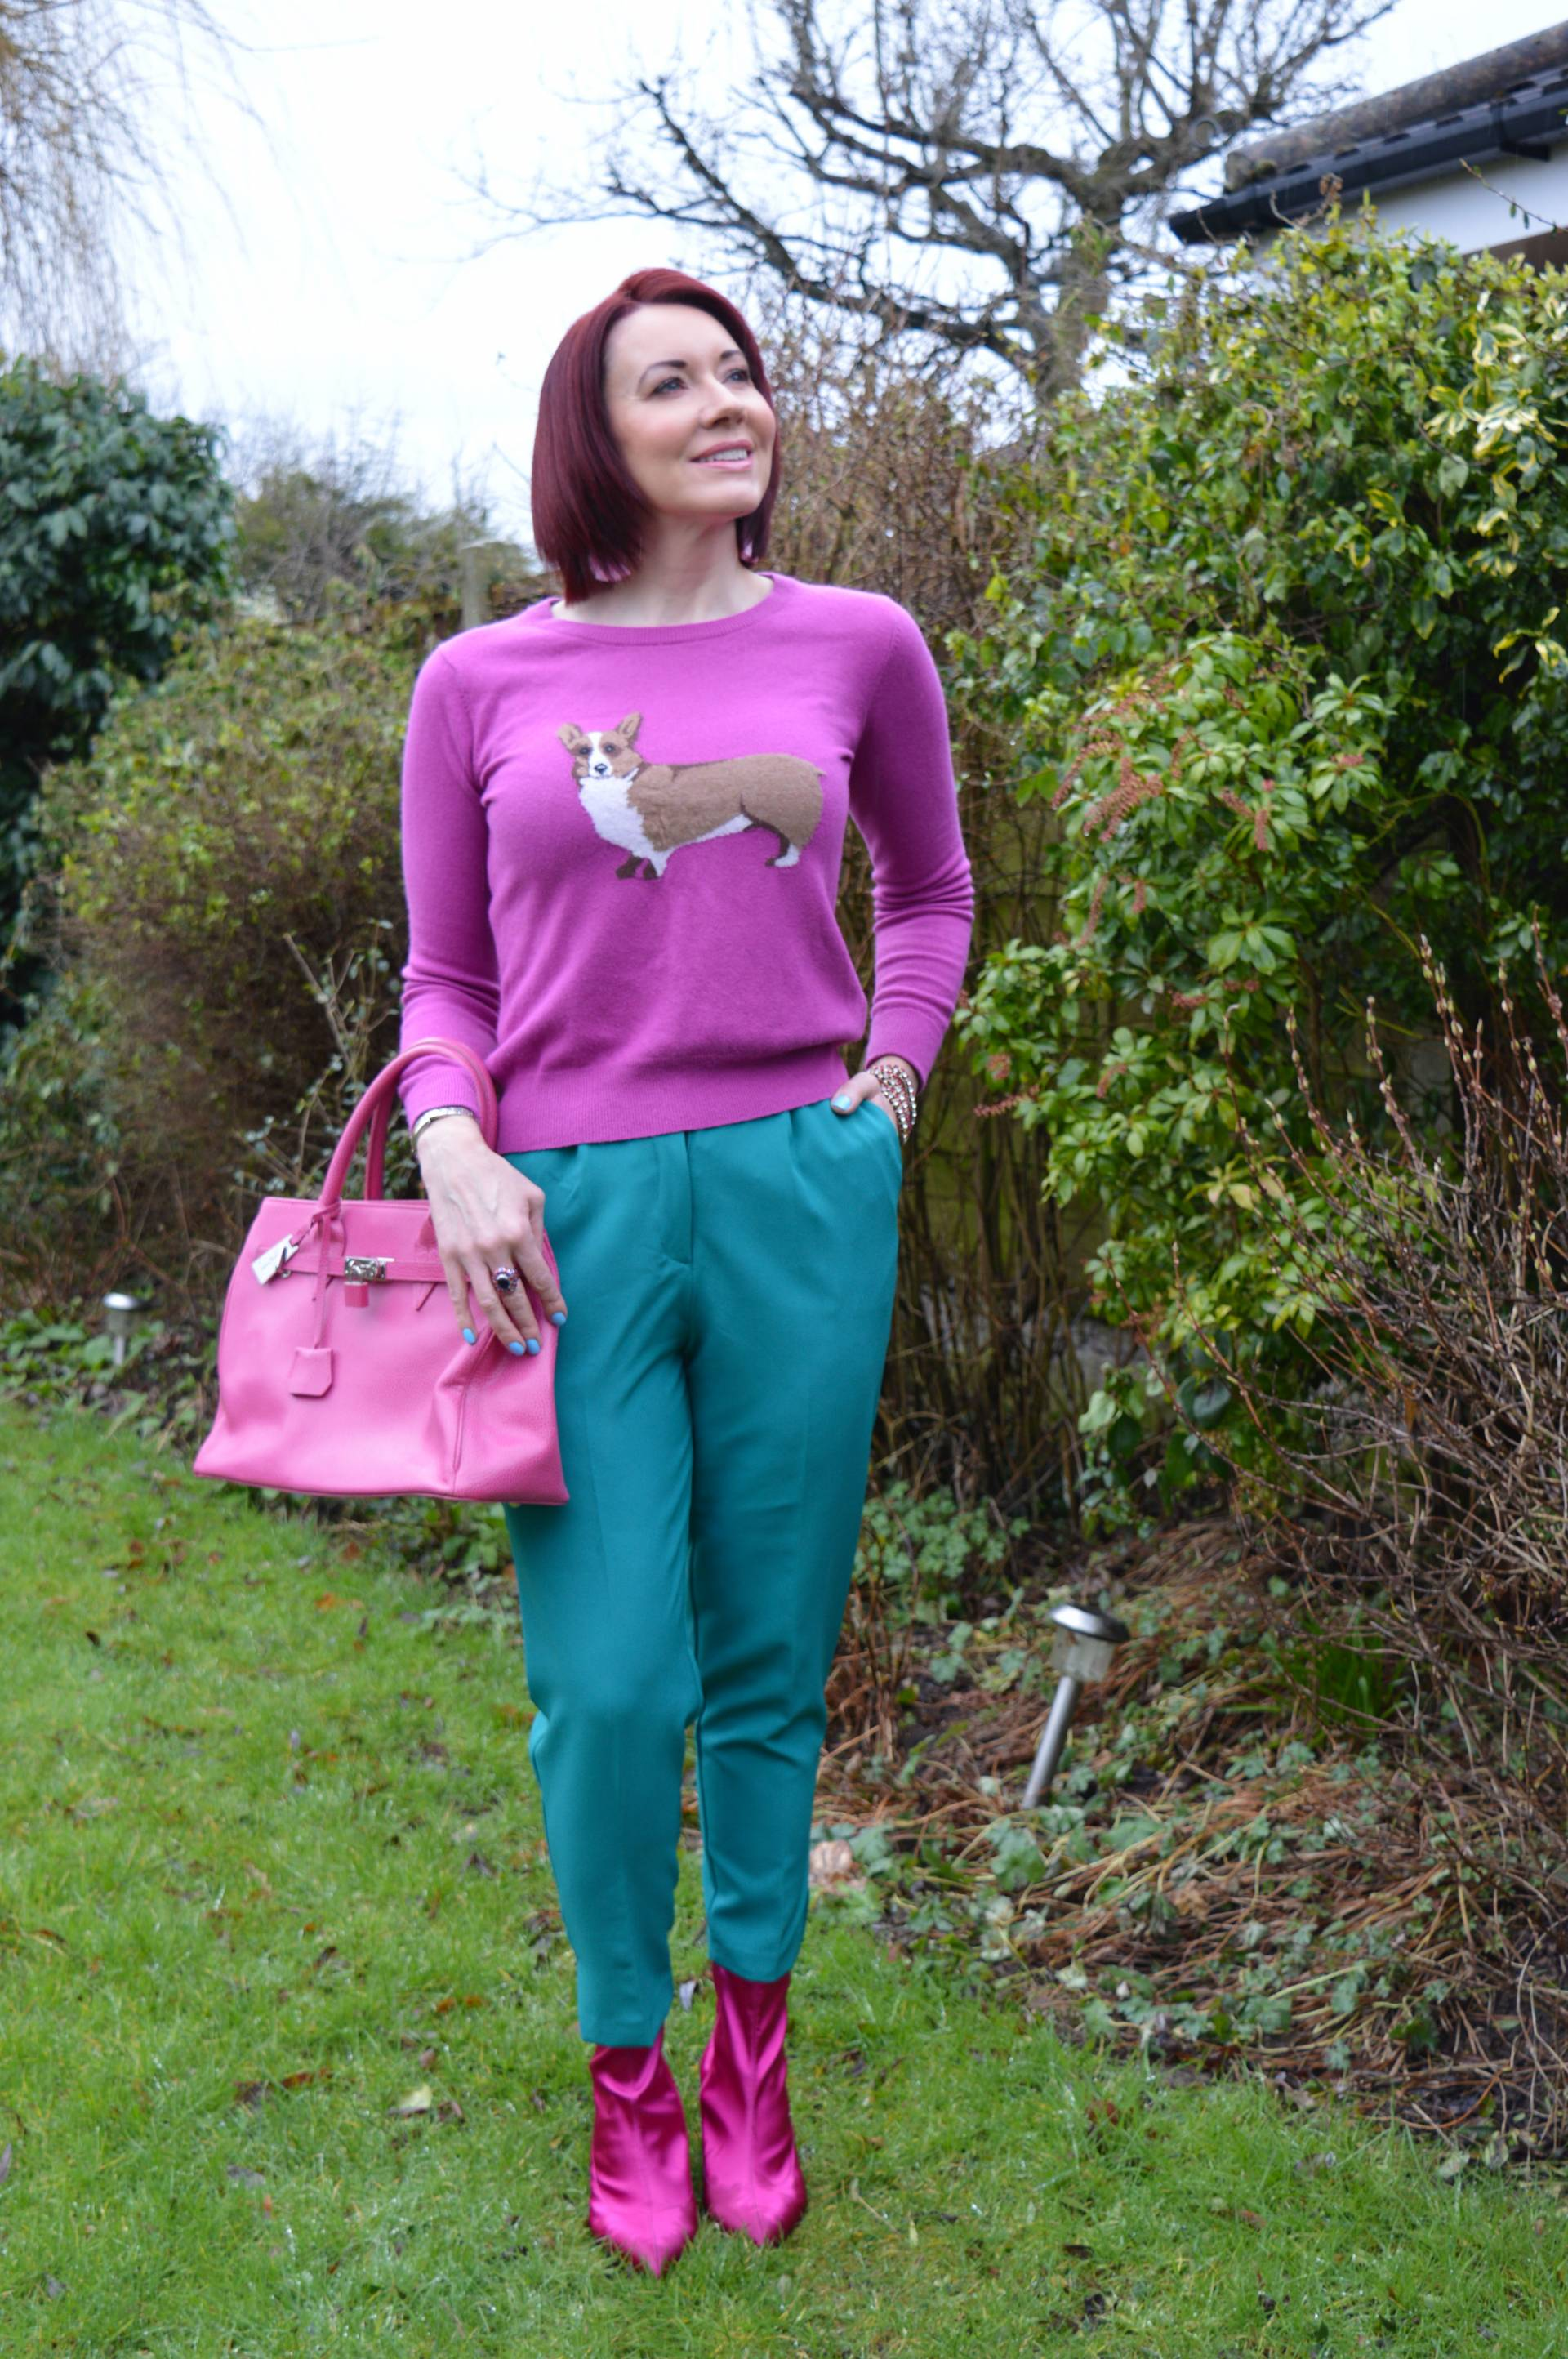 Pink Joules Corgi Jumper and Bright Green Trousers + Link Up